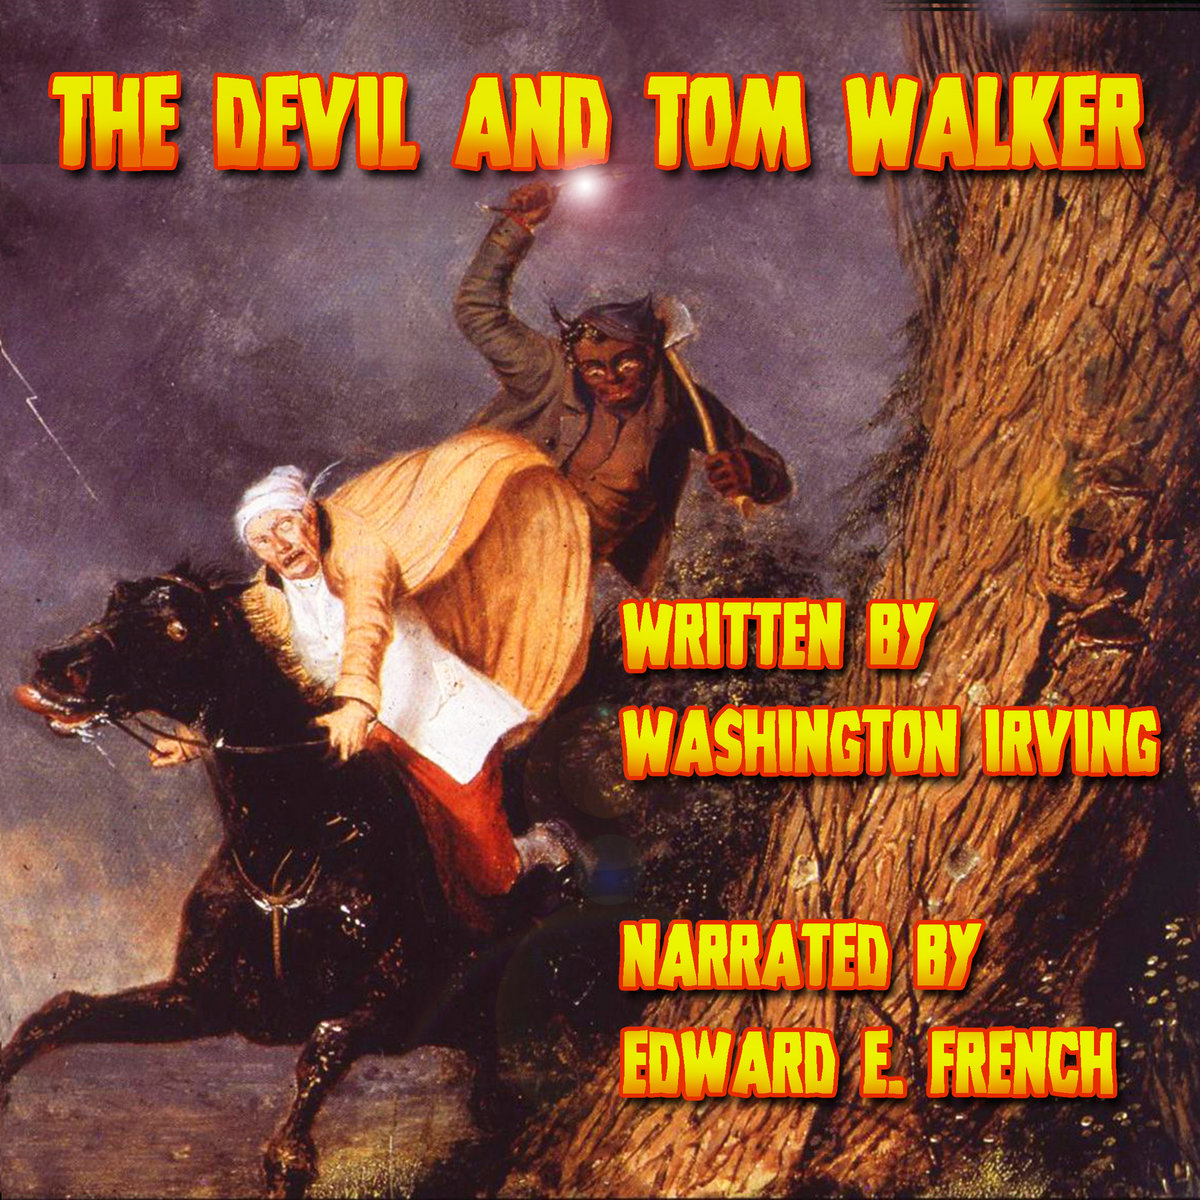 The Devil And Tom Walker By Washington Irving Narrated By